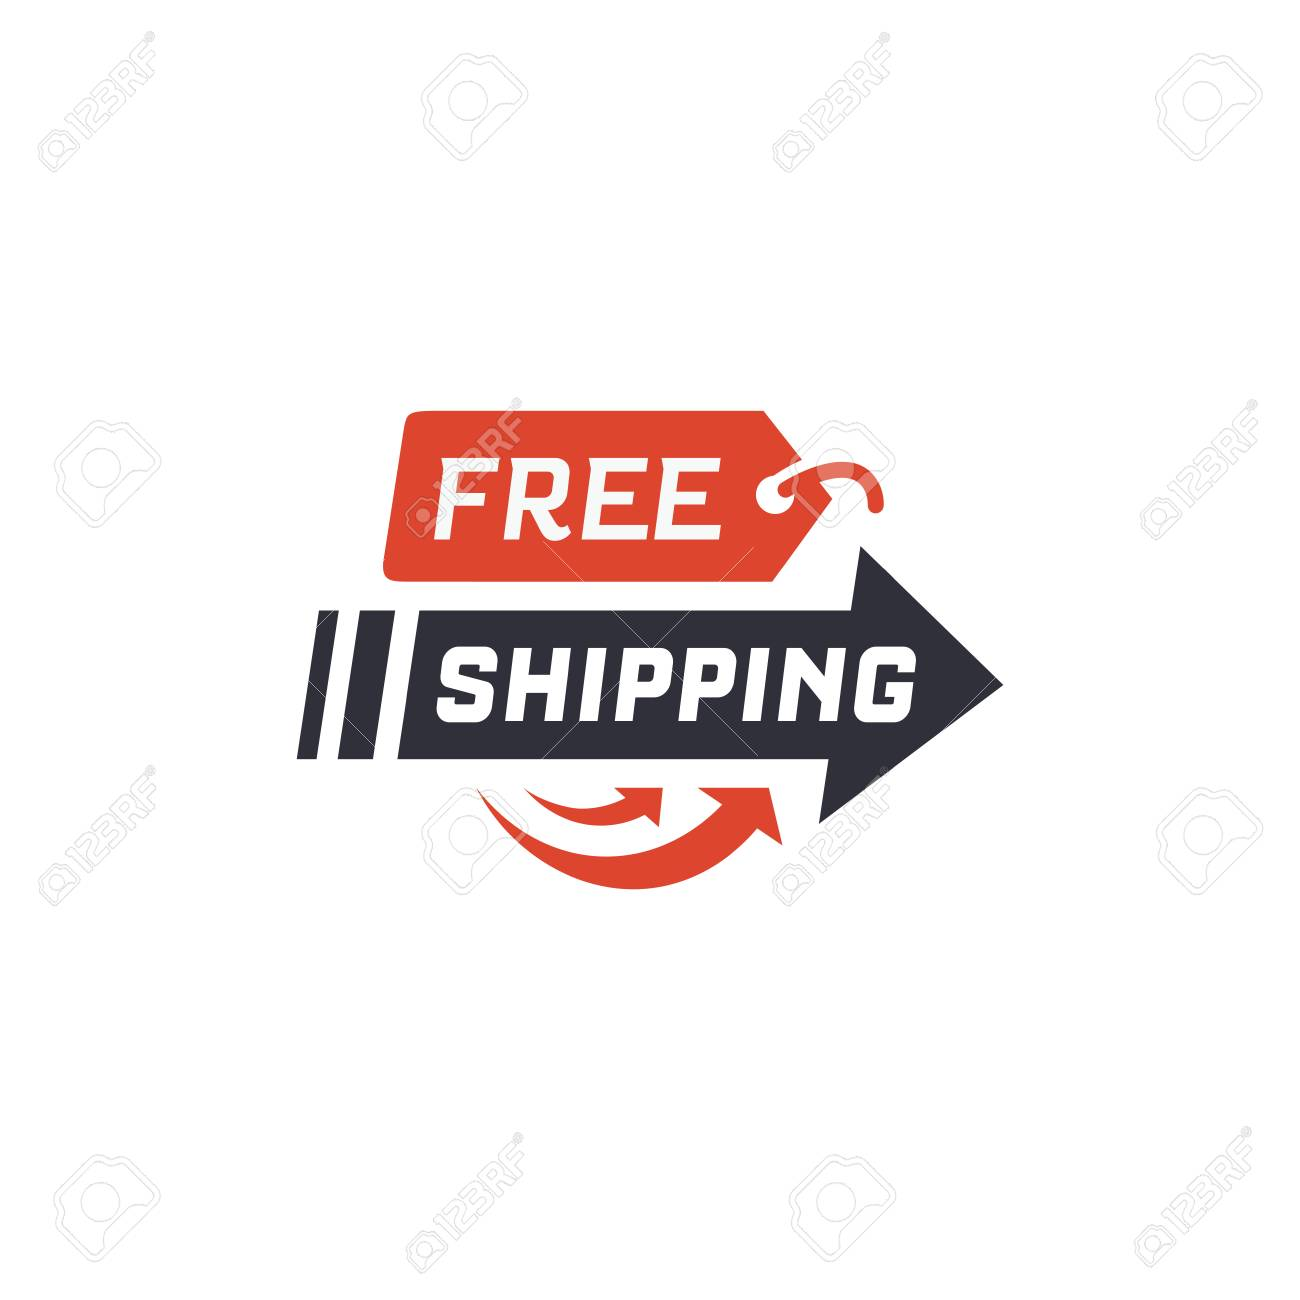 Free shipping  Delivery label for online shopping  Worldwide